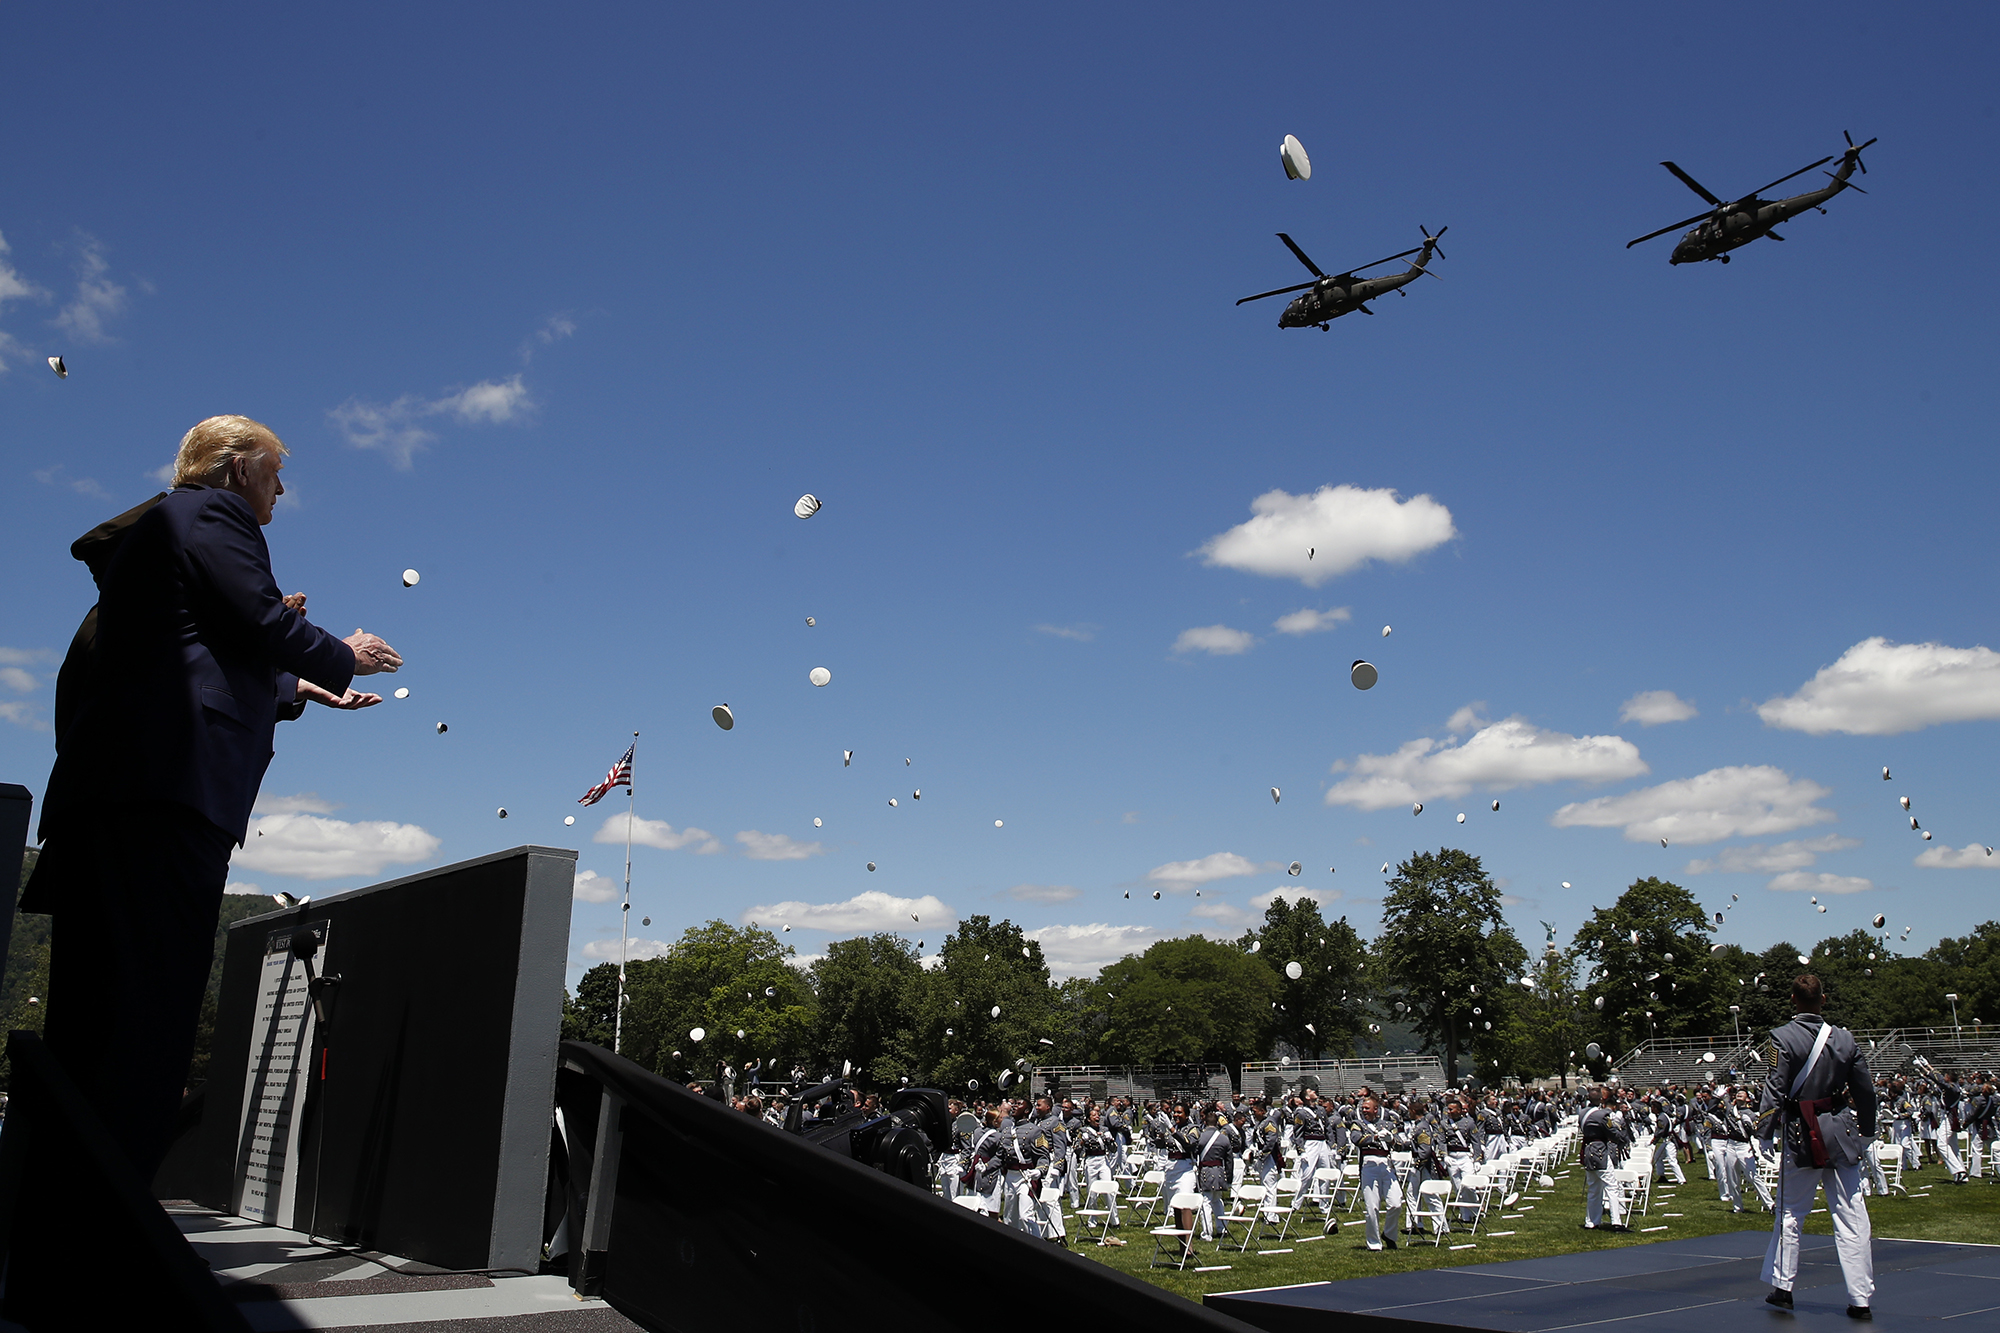 President Donald Trump applauds as Army helicopters fly over and West Point cadets toss their caps into the air at the end of commencement ceremonies on the parade field, at the United States Military Academy in West Point, N.Y., Saturday, June 13, 2020. (Alex Brandon/AP)